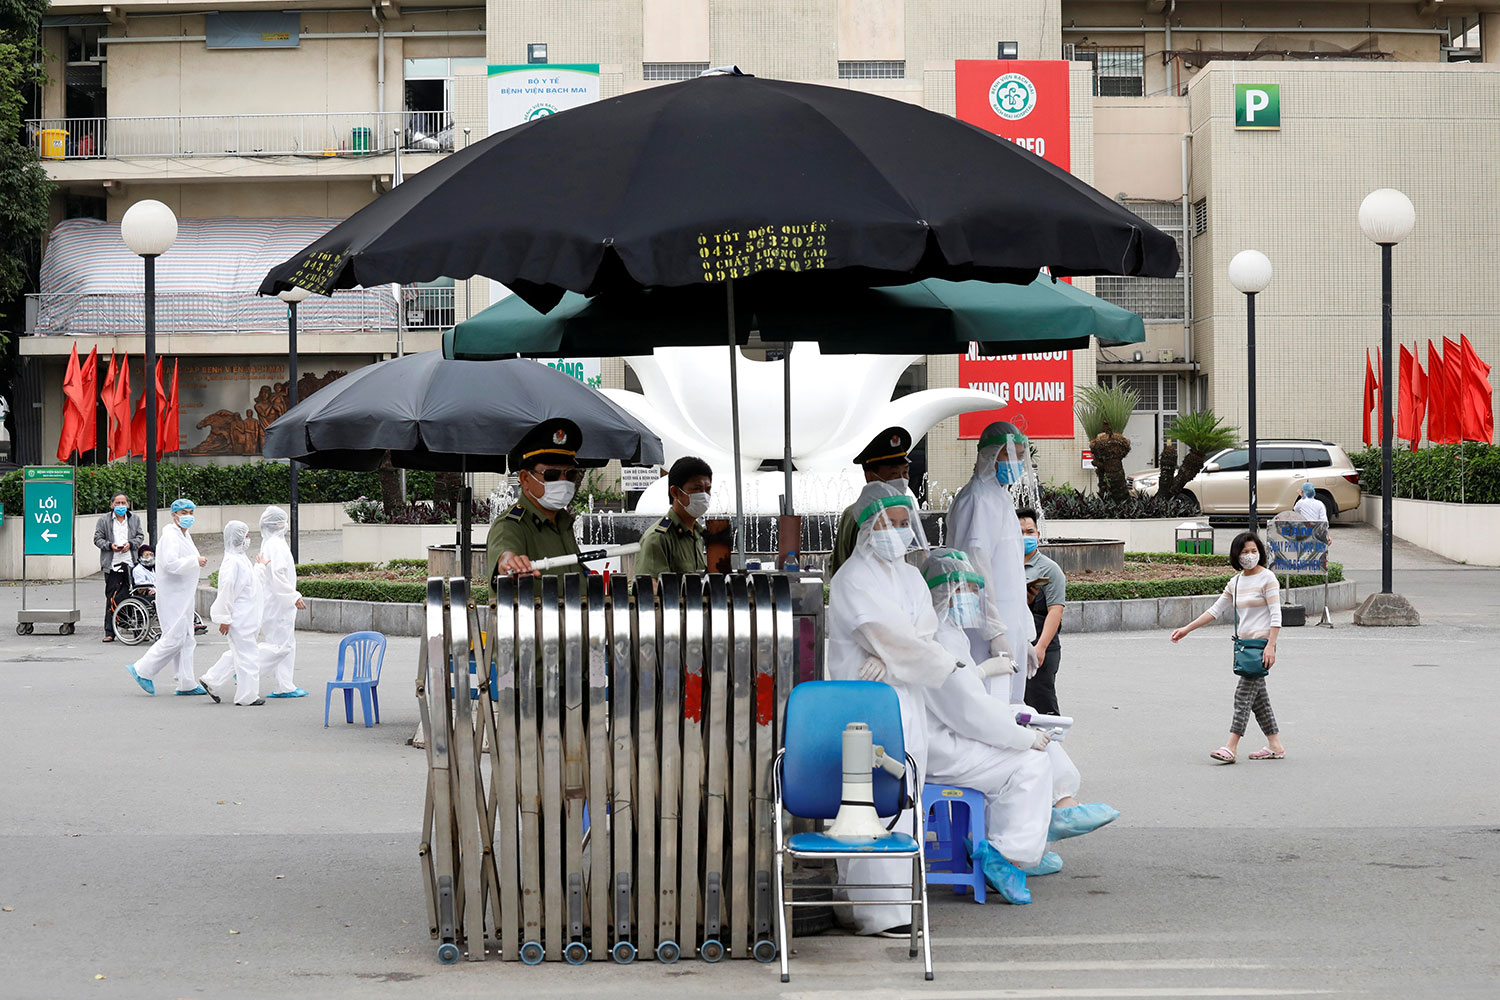 Photo shows the hospital from the outside with a simple triage set up with a black umbrella.